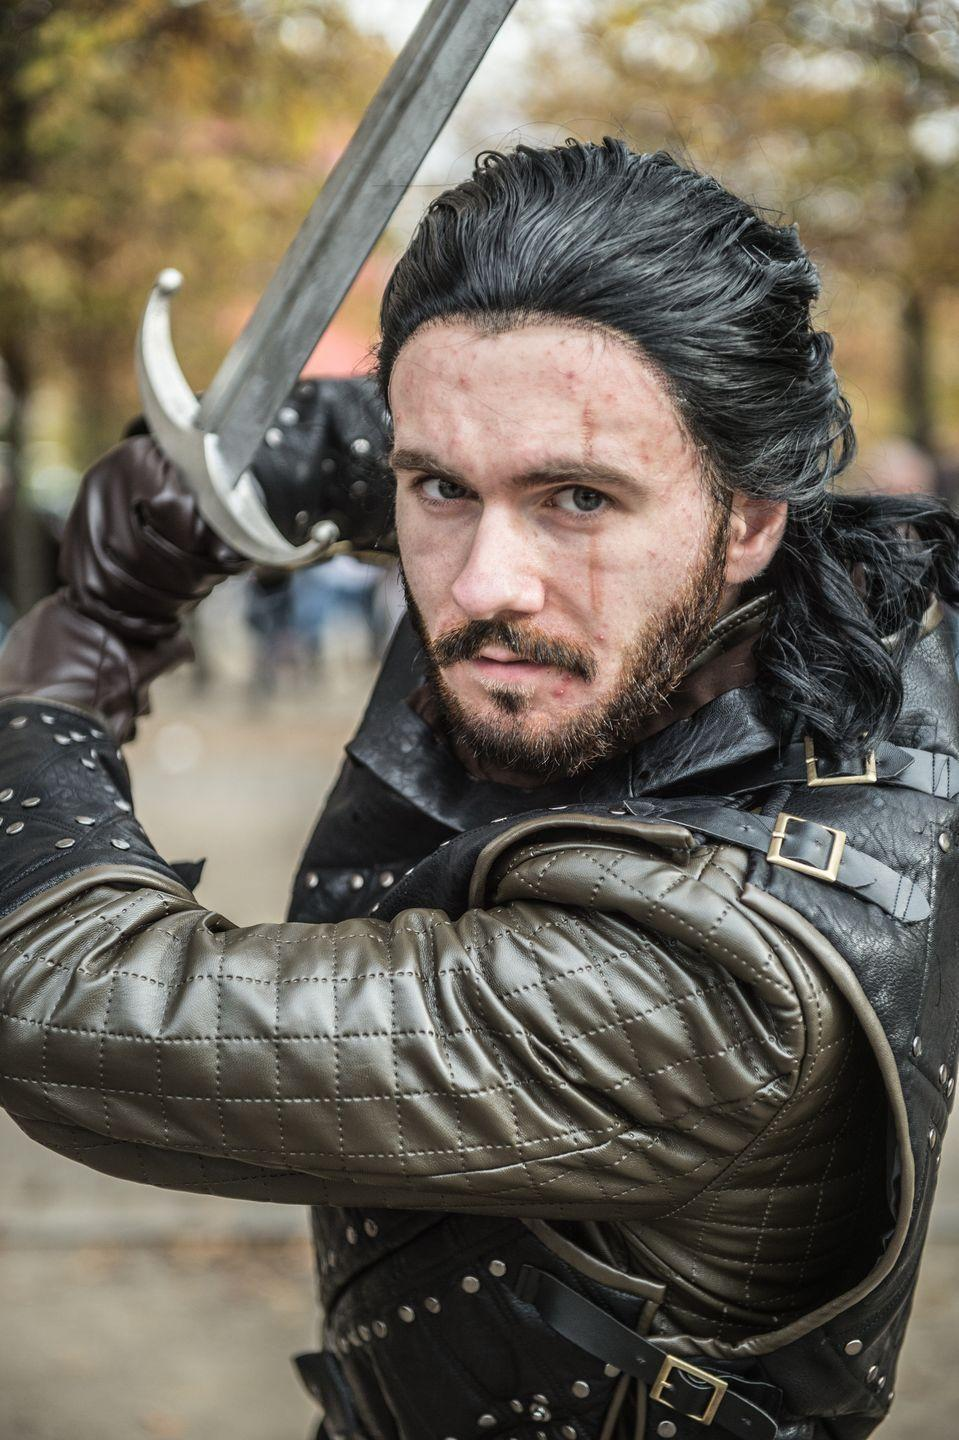 """<p>Jon Snow. The Bastard of Winterfell. Aegon Targaryen. A man of many names, always with his trusty sword, Longclaw. His many roles throughout <em>Game of Thrones</em> led to quite a few awesome outfits to emulate this Halloween.</p><p><a class=""""link rapid-noclick-resp"""" href=""""https://www.amazon.com/Thrones-Costume-Cosplay-Cloak-Adult/dp/B00QLUORE8?tag=syn-yahoo-20&ascsubtag=%5Bartid%7C10070.g.28762544%5Bsrc%7Cyahoo-us"""" rel=""""nofollow noopener"""" target=""""_blank"""" data-ylk=""""slk:SHOP CLOAK"""">SHOP CLOAK</a></p><p><a class=""""link rapid-noclick-resp"""" href=""""https://www.amazon.com/Game-Thrones-Replica-Sword-Standard/dp/B074MJ5Q7D/?tag=syn-yahoo-20&ascsubtag=%5Bartid%7C10070.g.28762544%5Bsrc%7Cyahoo-us"""" rel=""""nofollow noopener"""" target=""""_blank"""" data-ylk=""""slk:SHOP SWORD"""">SHOP SWORD</a></p>"""